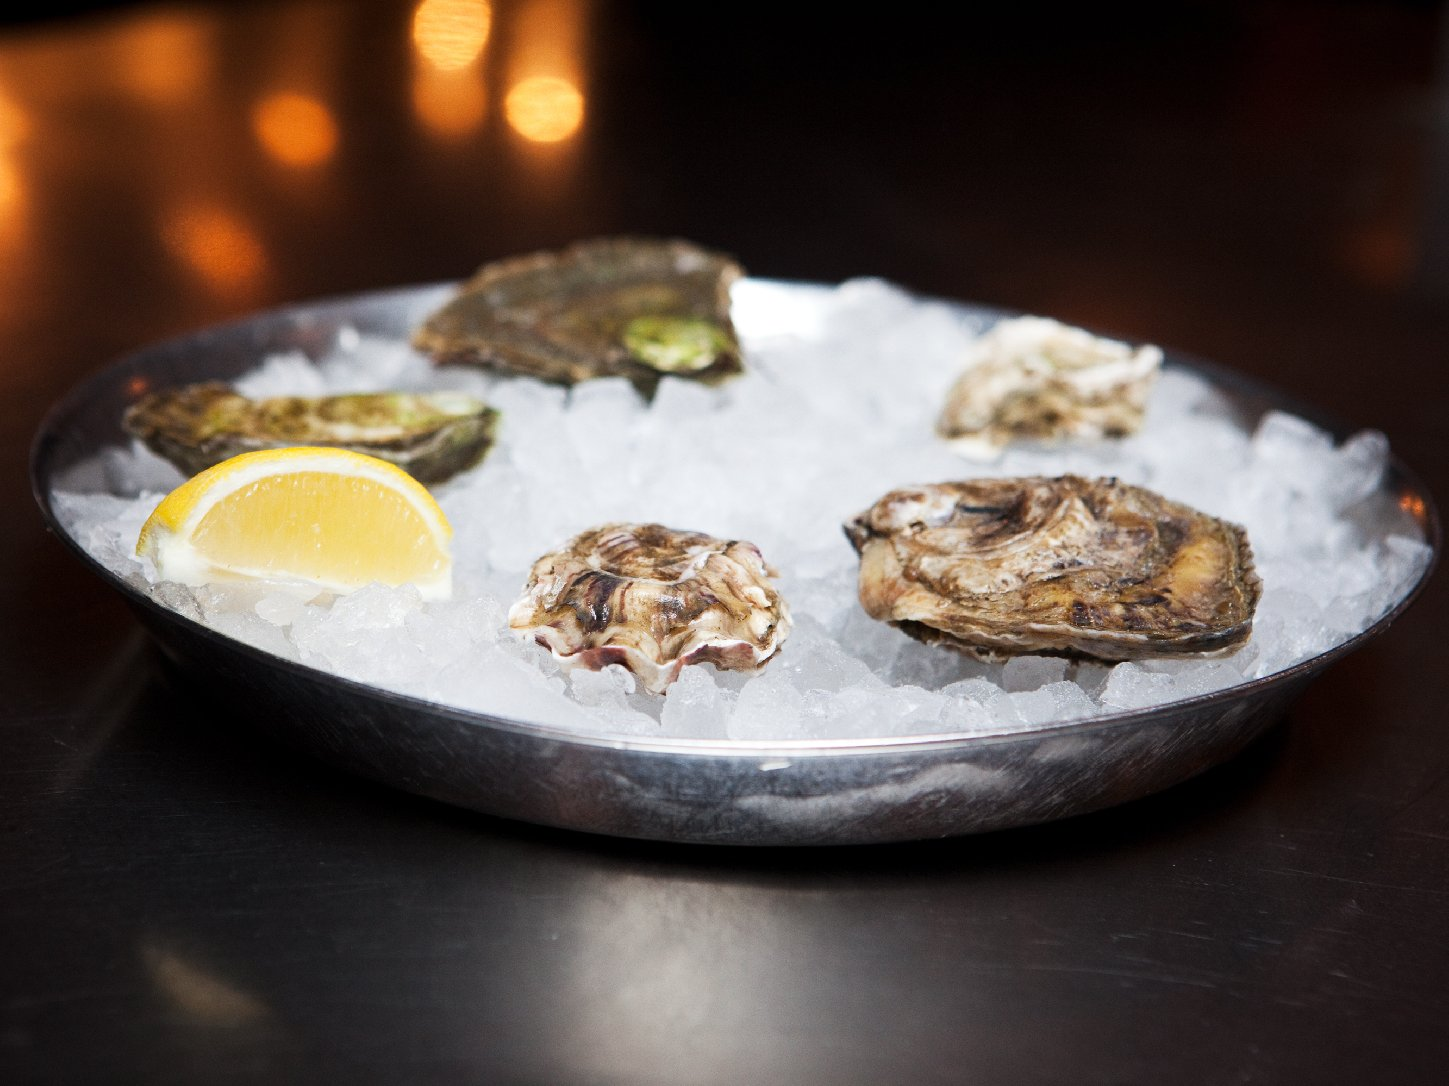 The stories linking oysters and other shellfish to lust go back to at least the ancient Greeks. (Maggie Starbard/NPR)